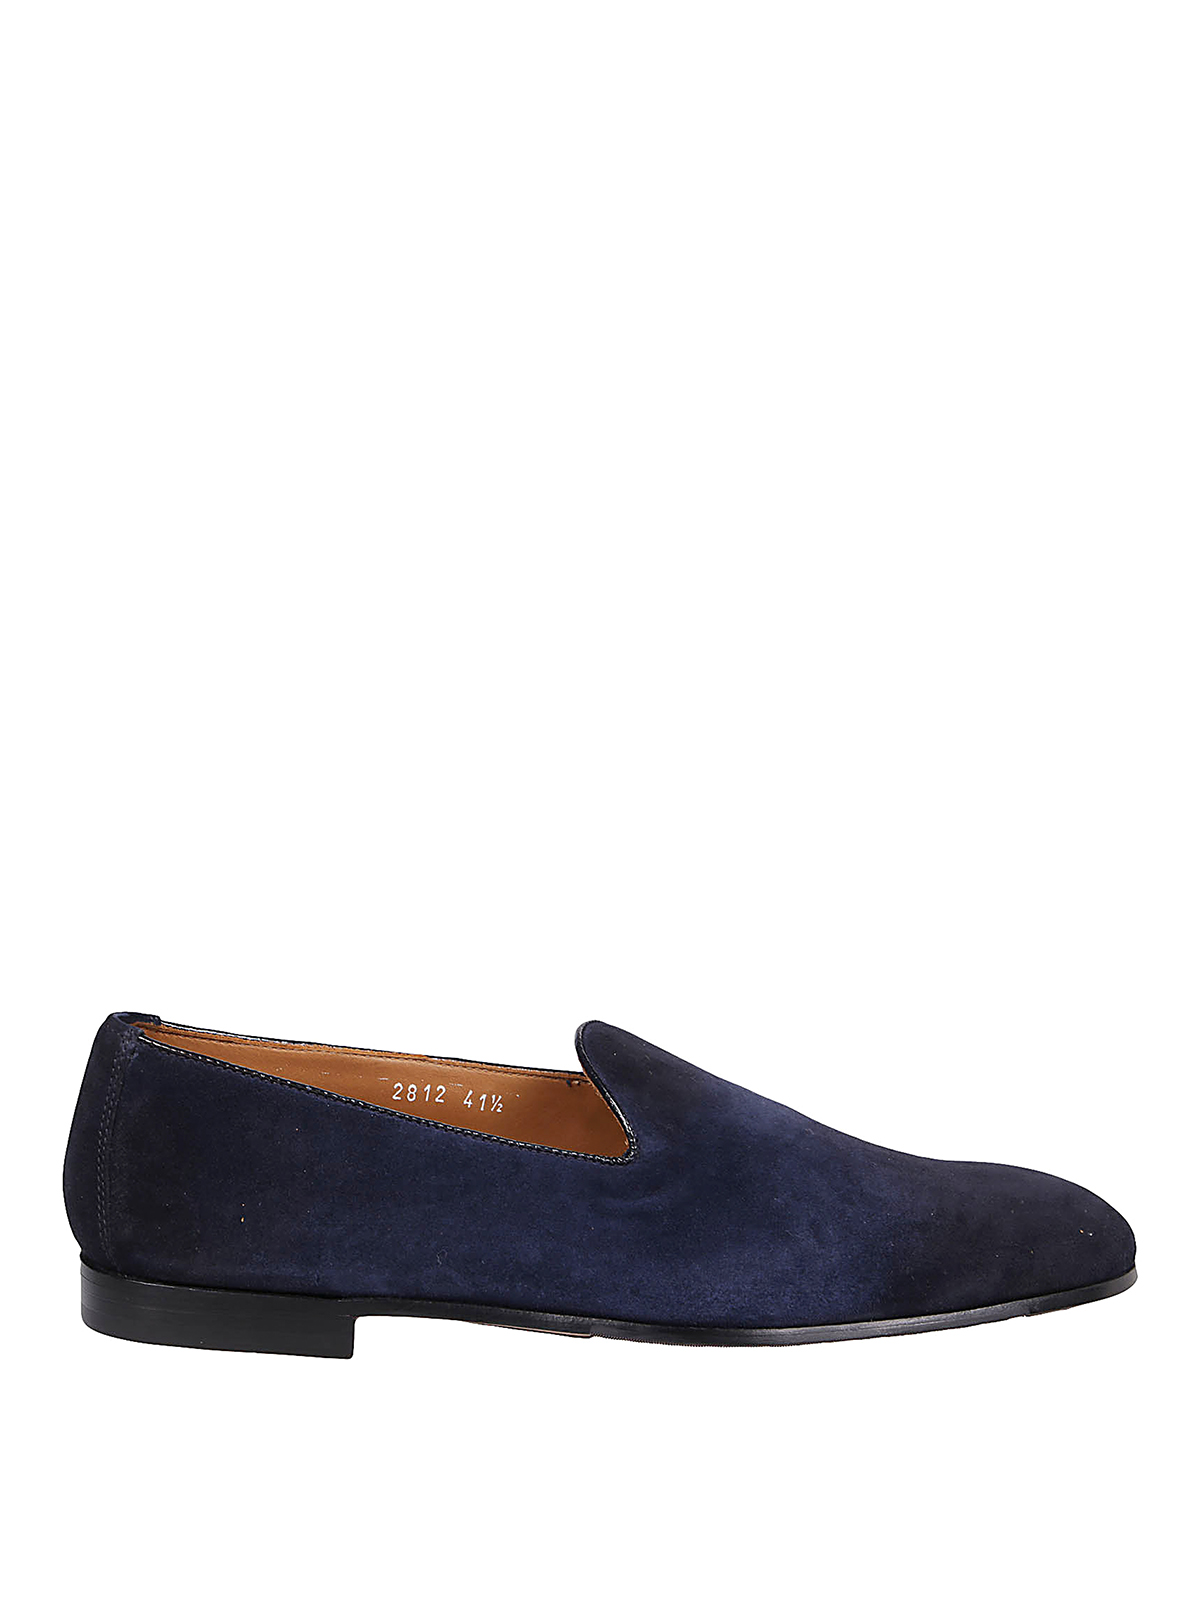 Doucal's Leathers SUEDE SLIP-ON LOAFERS